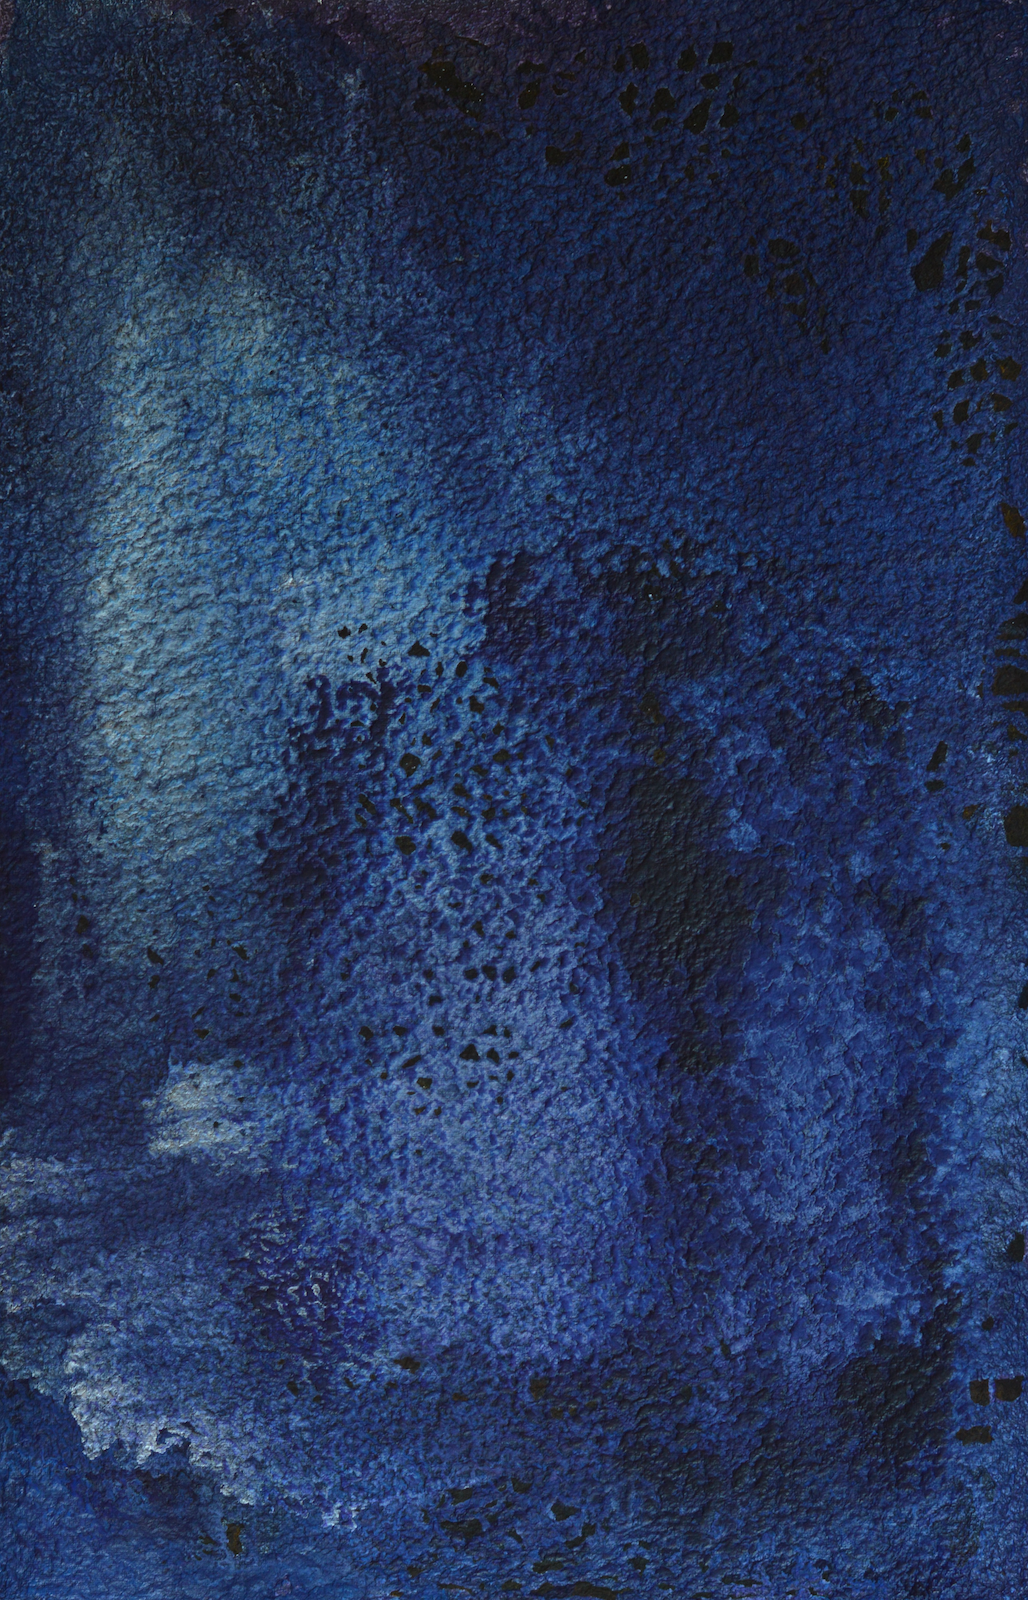 Nocturnal Luminance is dark with Prussian blue above which violet and bluish-lilac white shift up and down the textured paper. Acrylic on Moulin de Larroque handmade paper, measuring 11cm x 71cm. One of the abstract paintings within the Day the Sky Shattered and Flew Away.